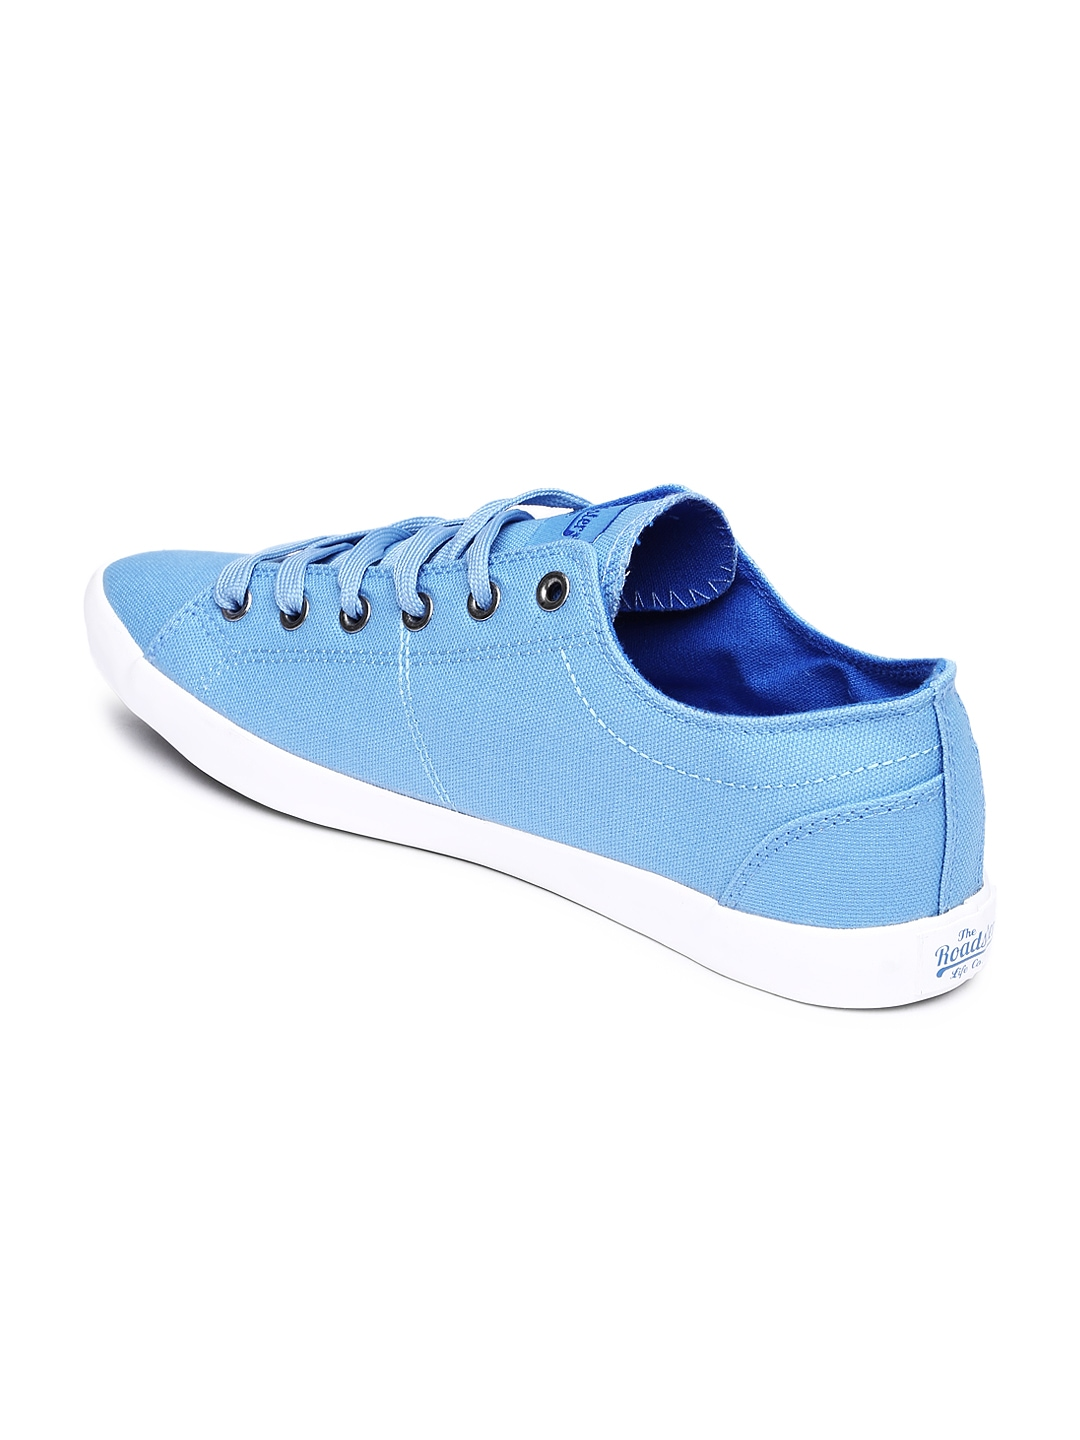 myntra roadster blue casual shoes 733593 buy myntra